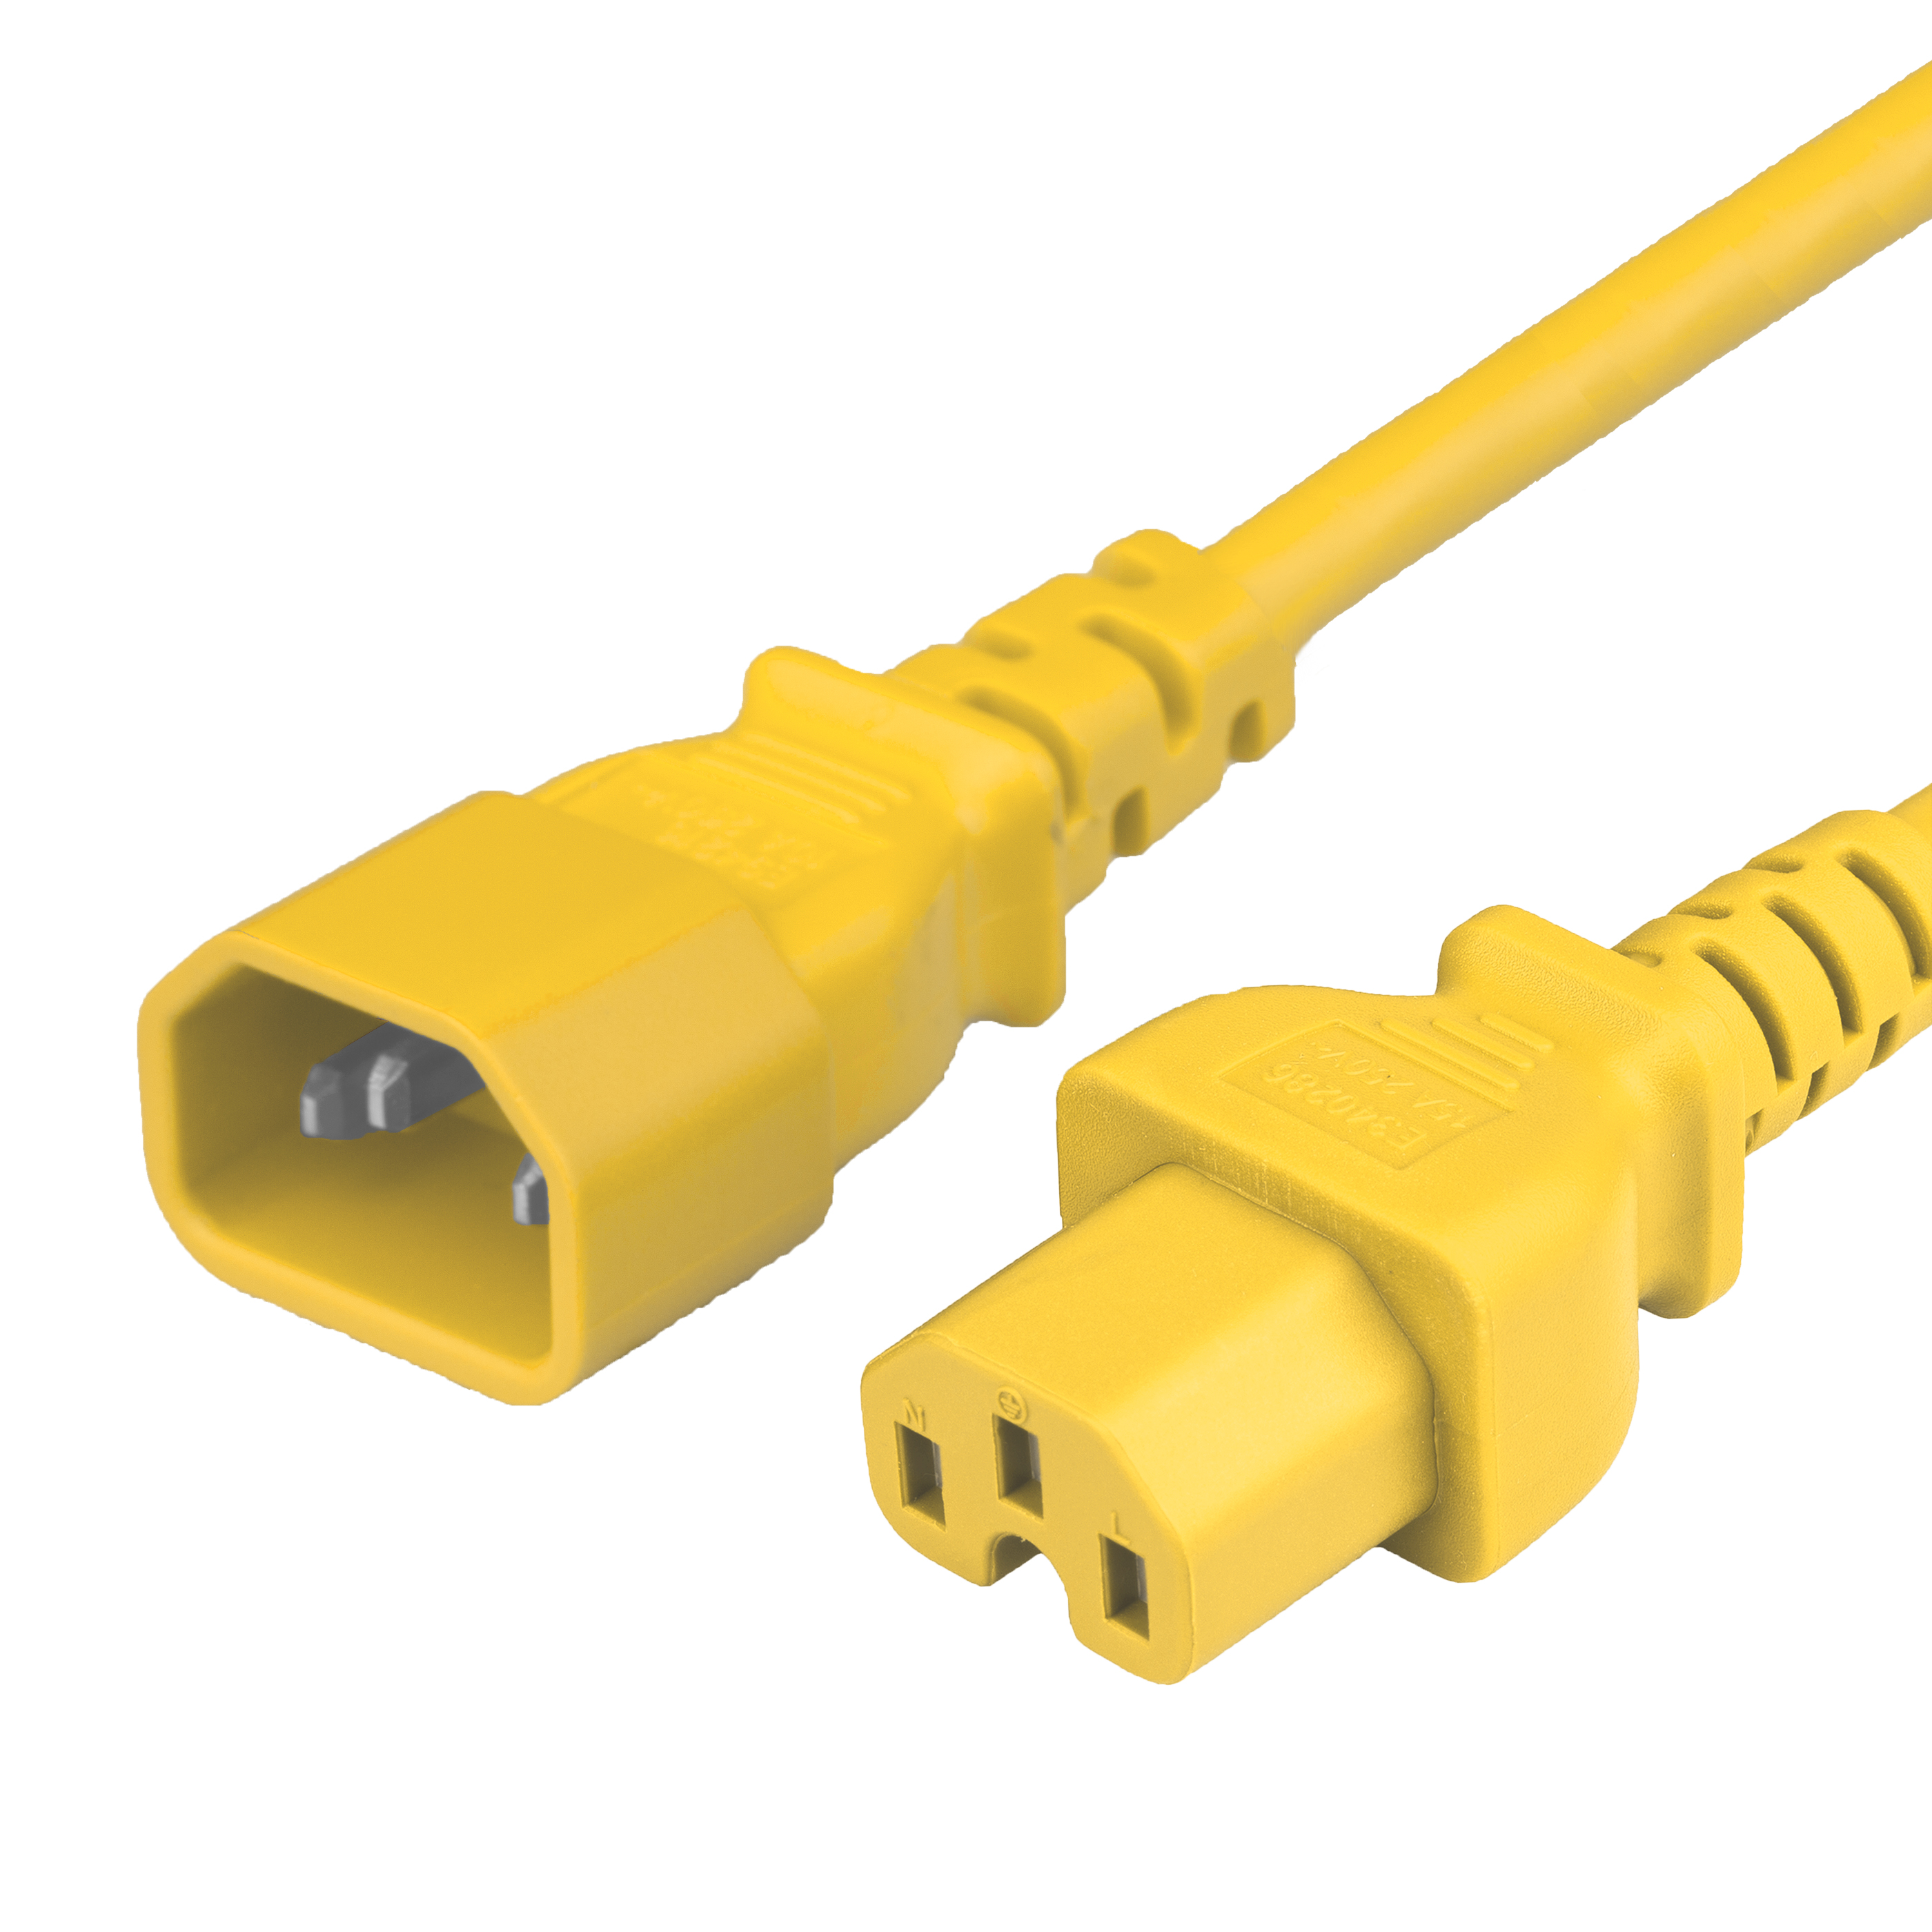 15FT C15 C14 15A 250V 14/3 SJT YELLOW Power Cord